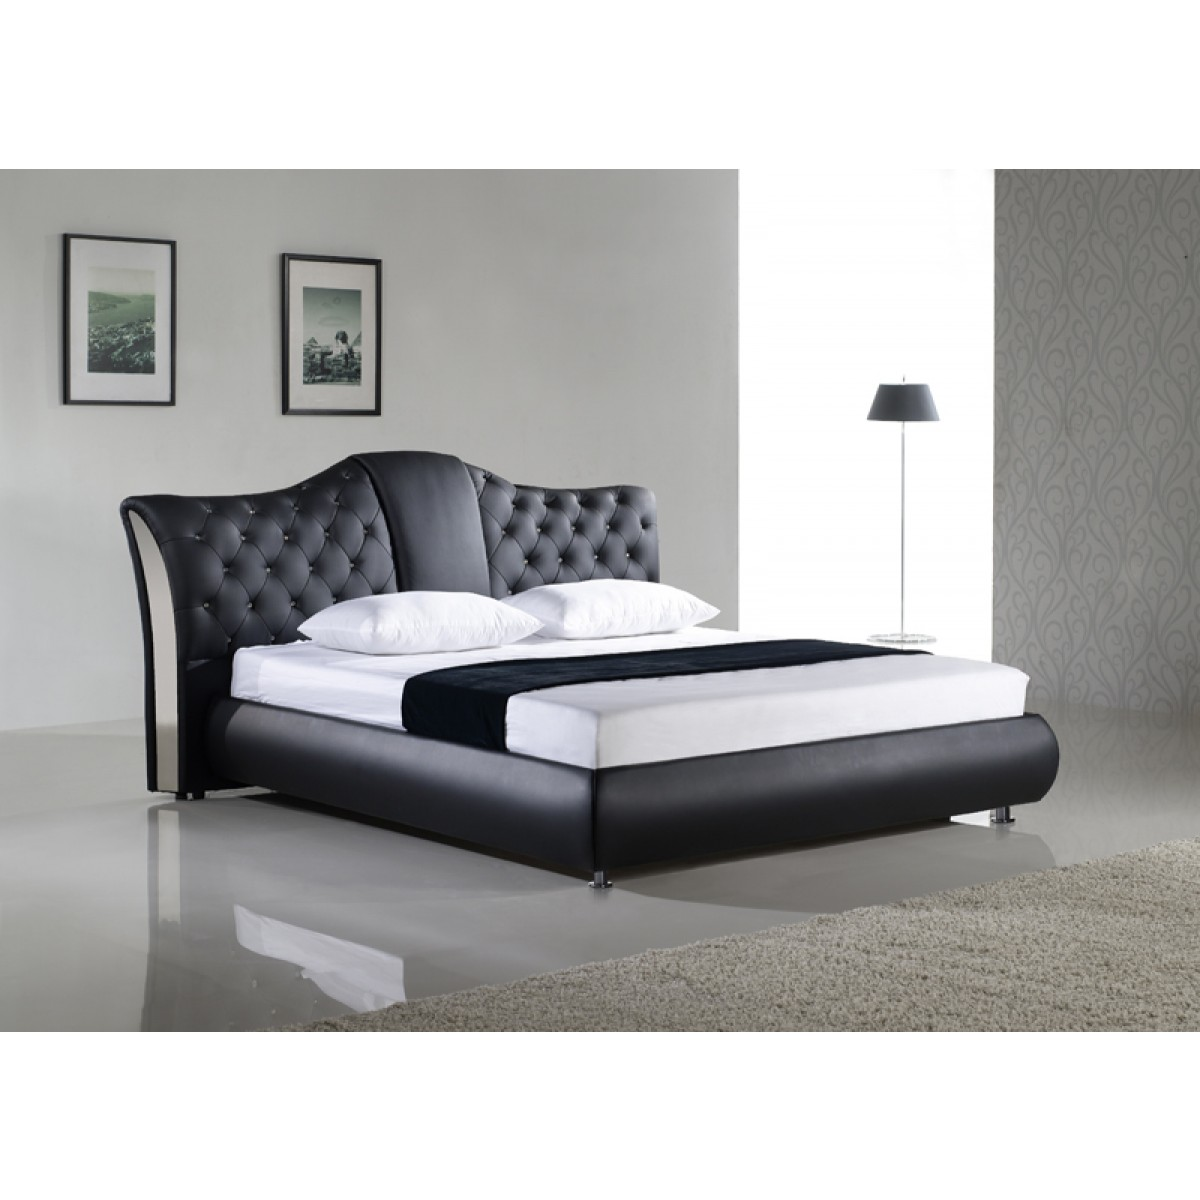 lit plus sommier lit matelas plus sommier clasf. Black Bedroom Furniture Sets. Home Design Ideas